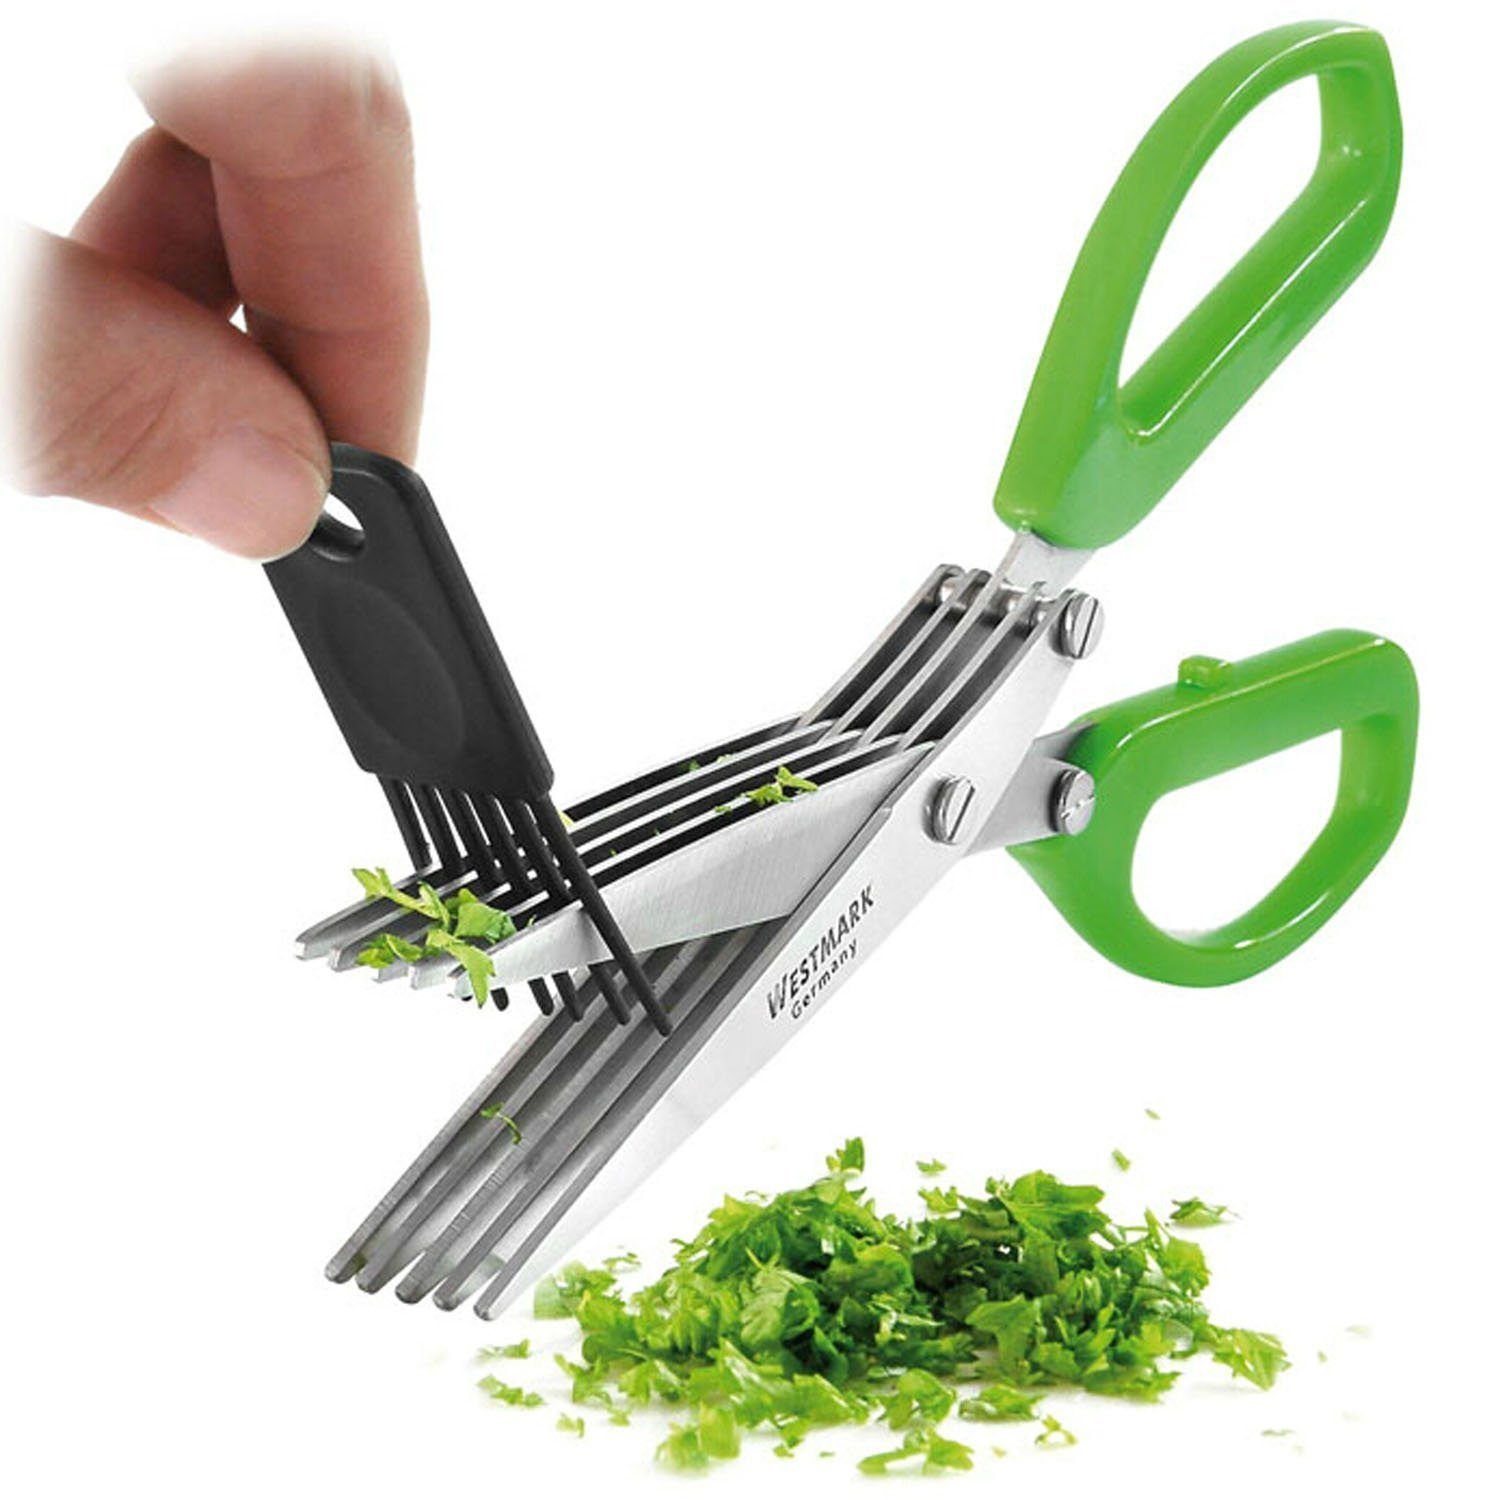 Westmark Germany Stainless Steel 5-Blade Herb Scissors with Cleaning Comb (Green) by Westmark